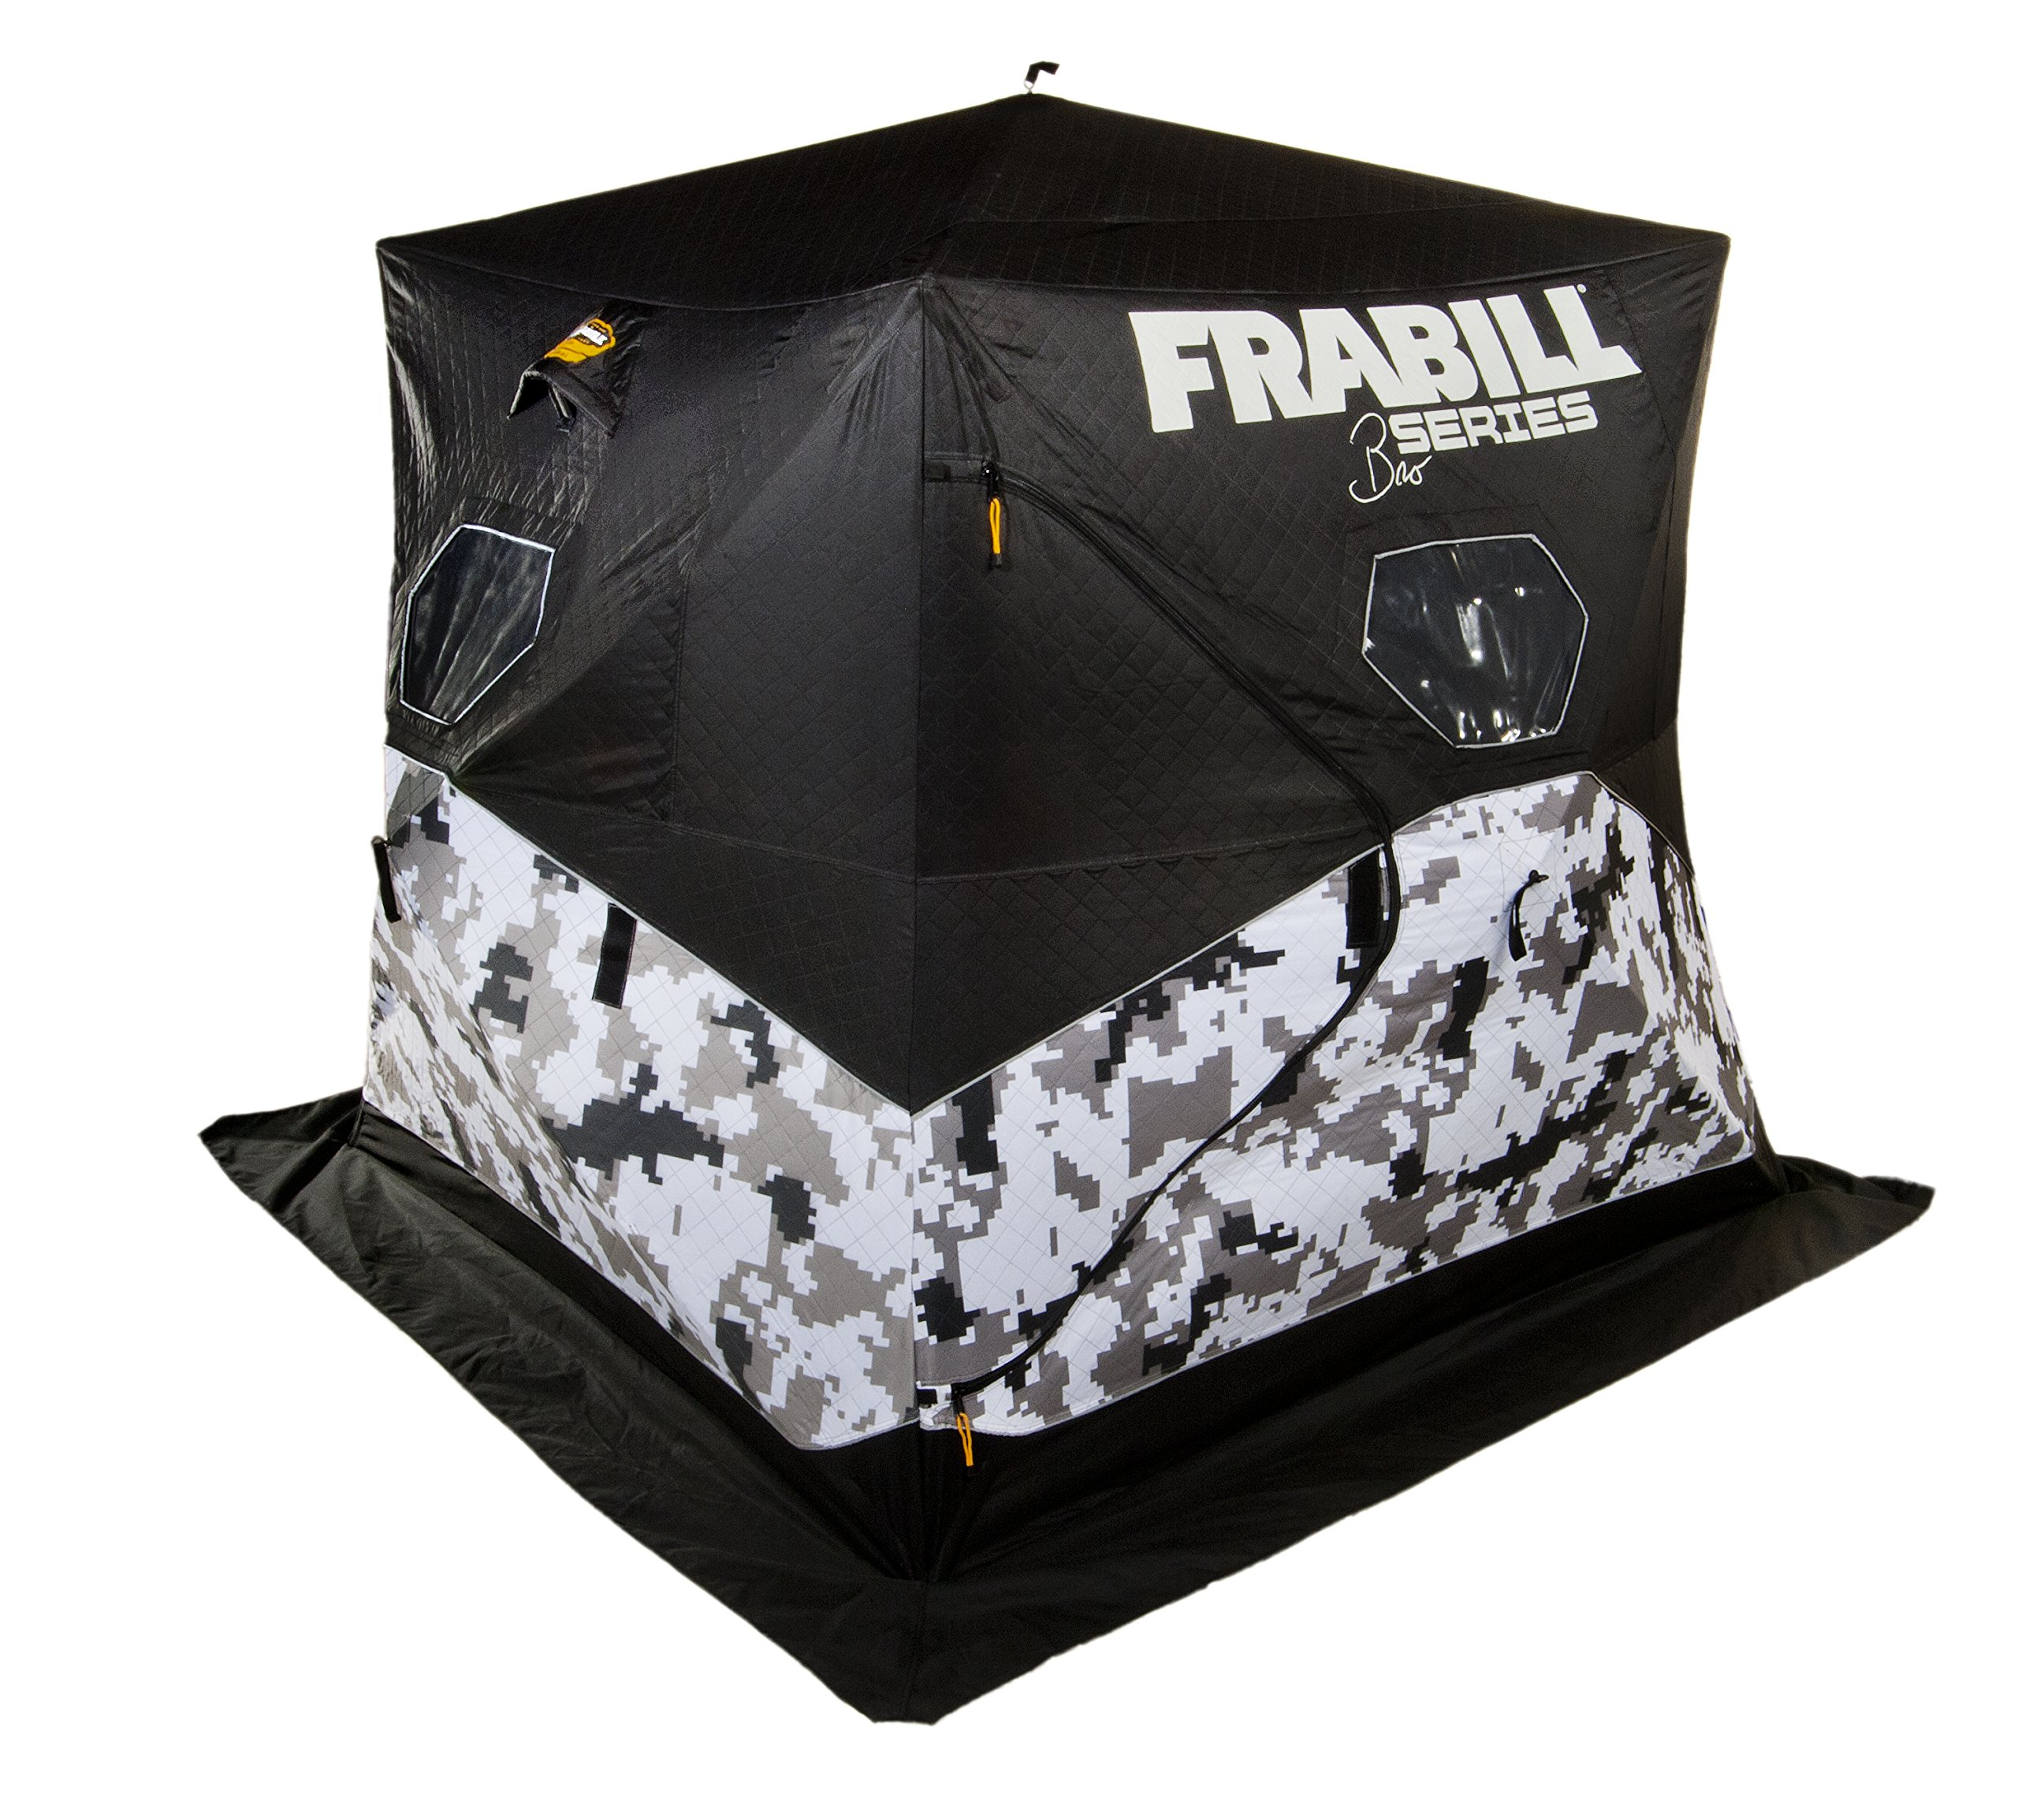 Frabill Bro Hub Top & Sides Insulated 2 - 3 Man Snow Camo Shelter by Frabill